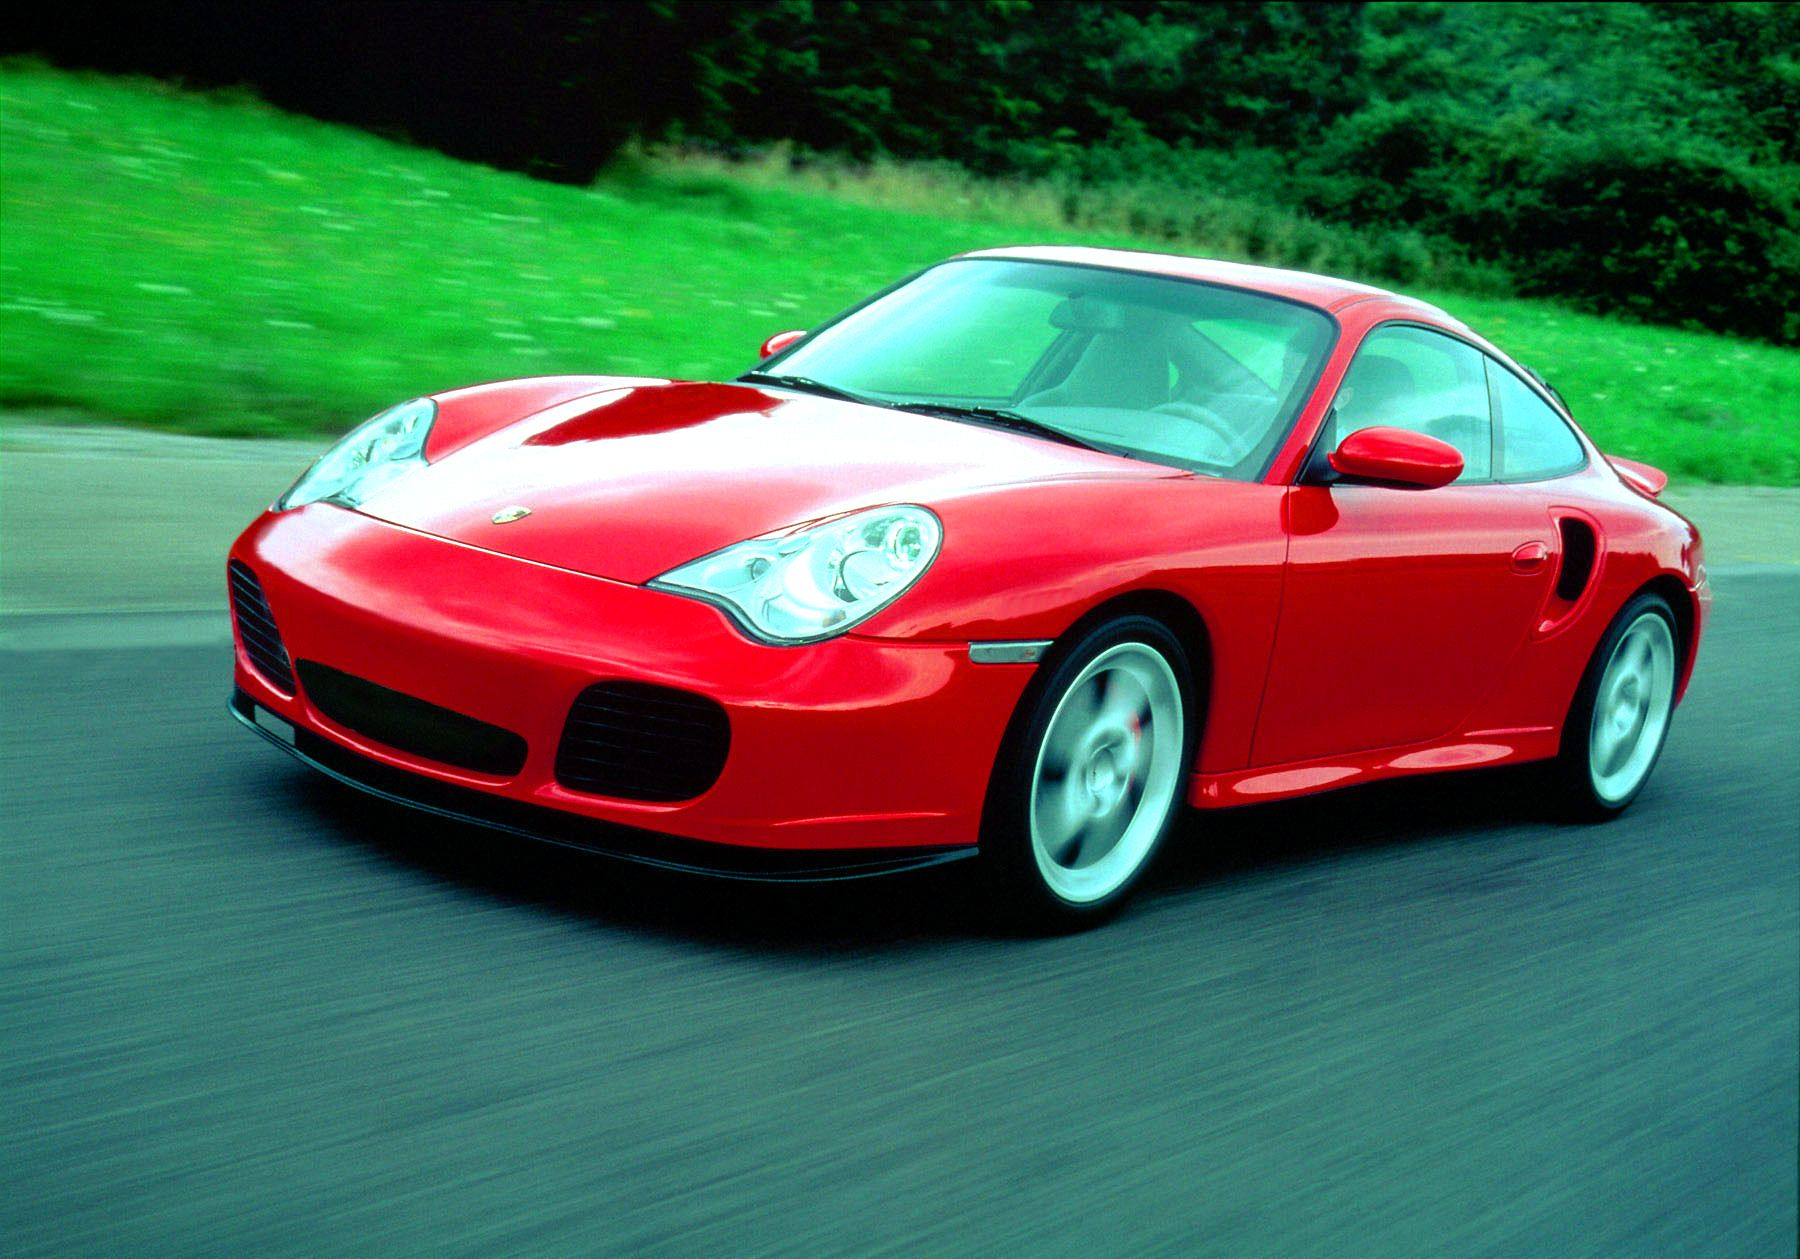 2000 Porsche 911 Turbo Image Photo 5 Of 17